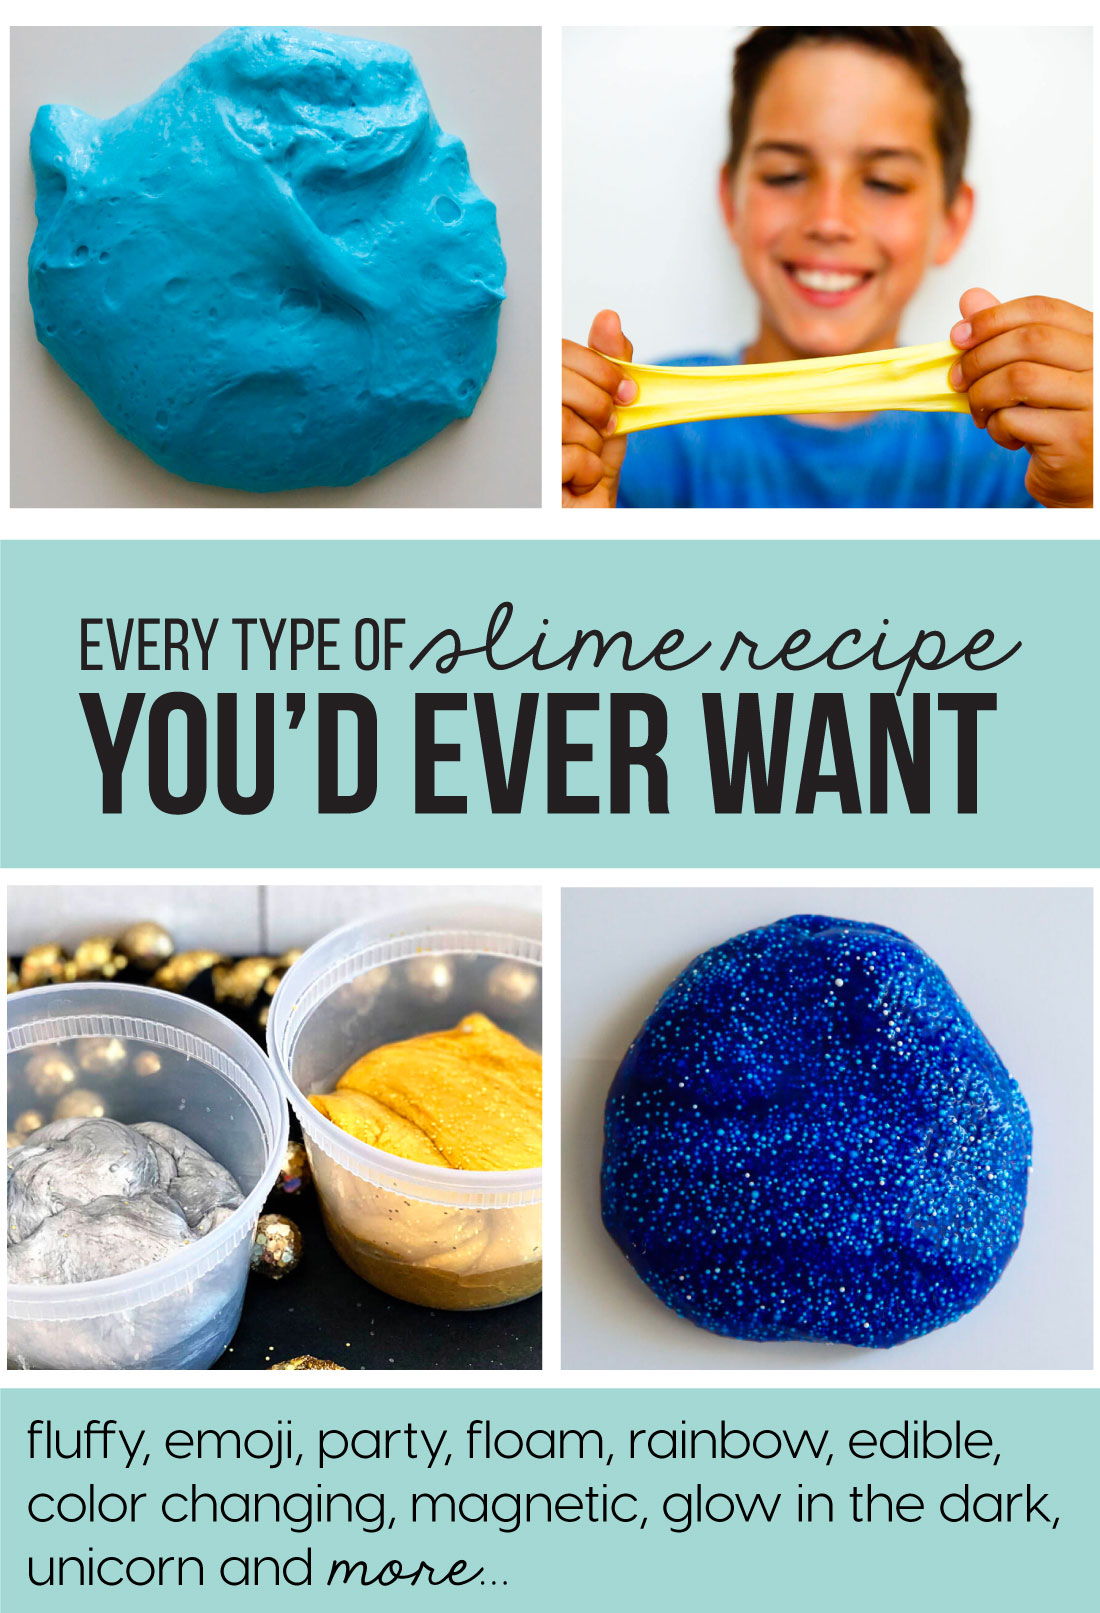 Every type of slime recipe you'd ever want..how to make slime! www.thirtyhandmadedays.com